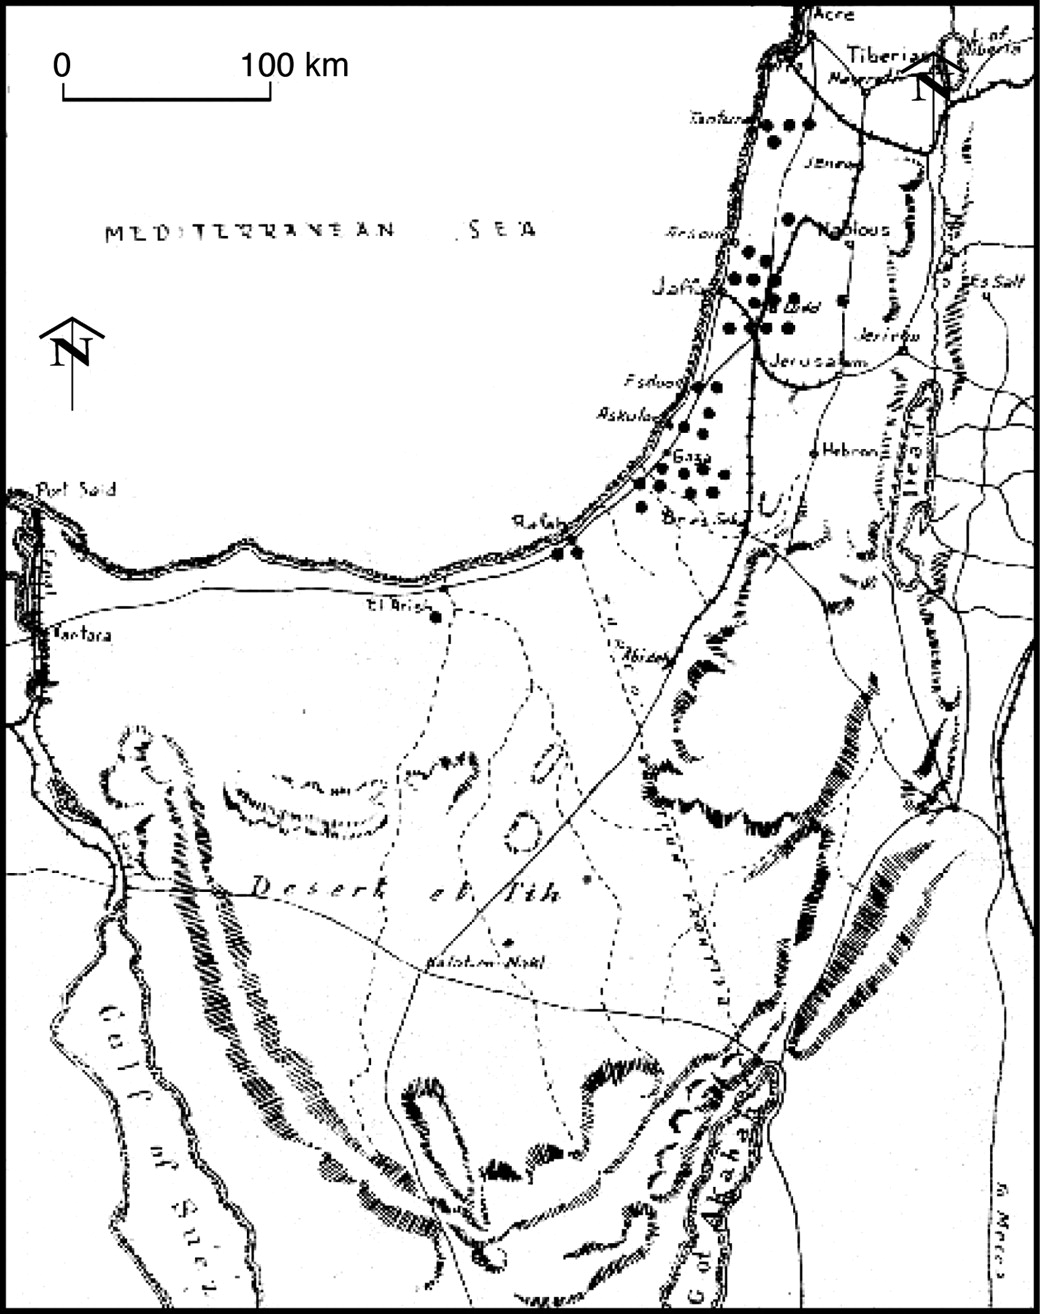 Groundwater As A Military Resource Pioneering British Military - Groundwater prospect map of egypt's qena valley